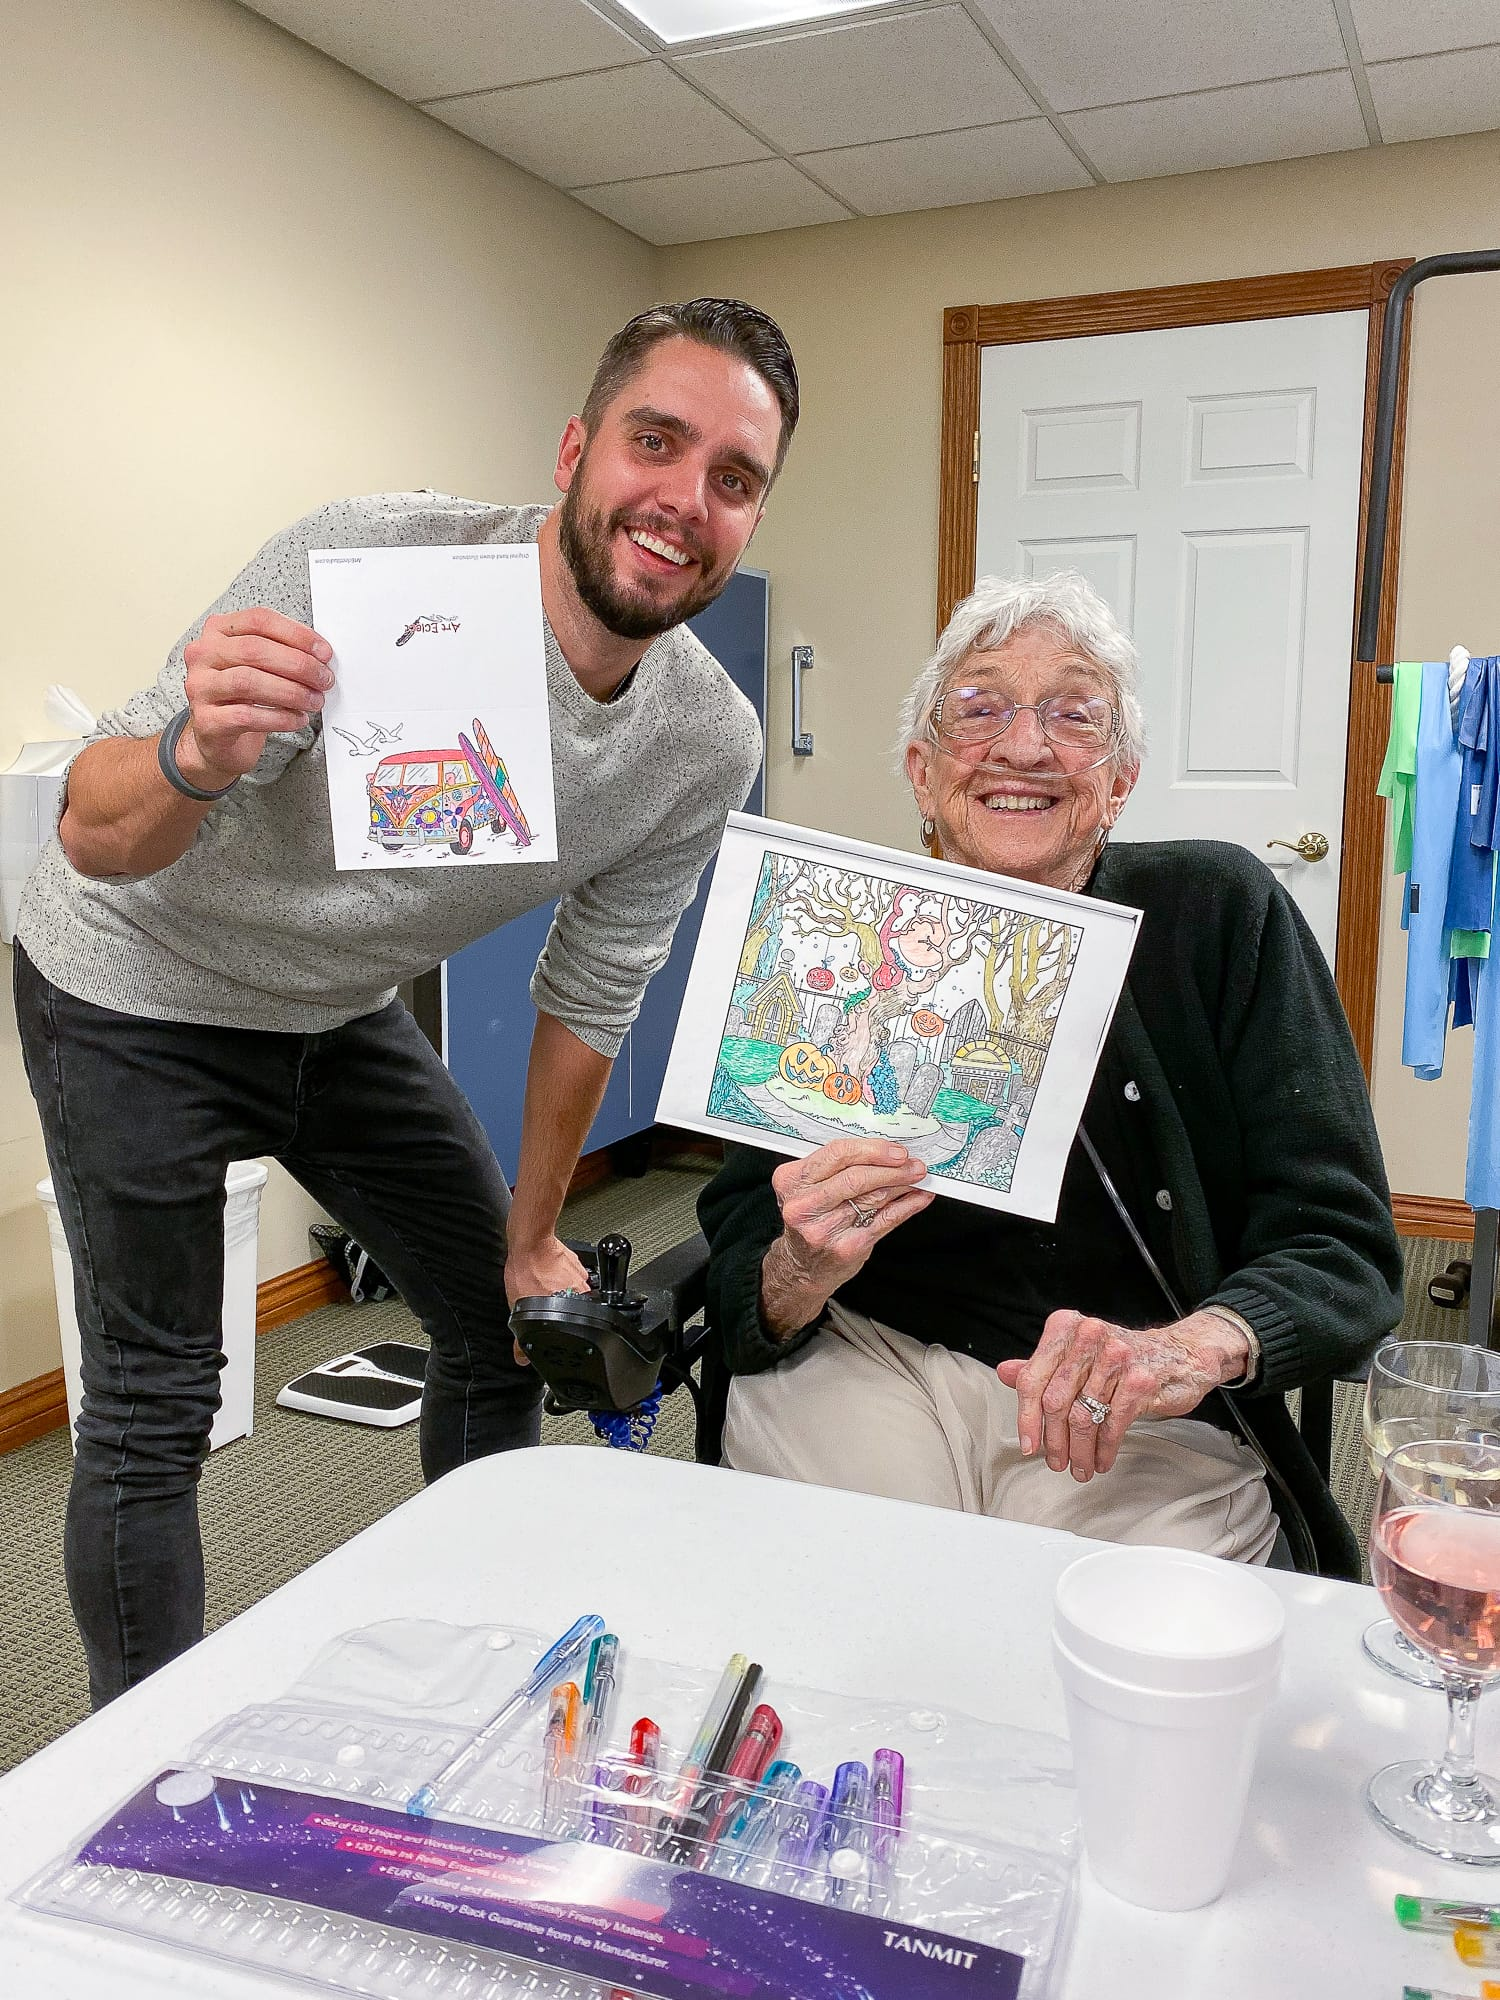 Ryan and Meme at coloring class